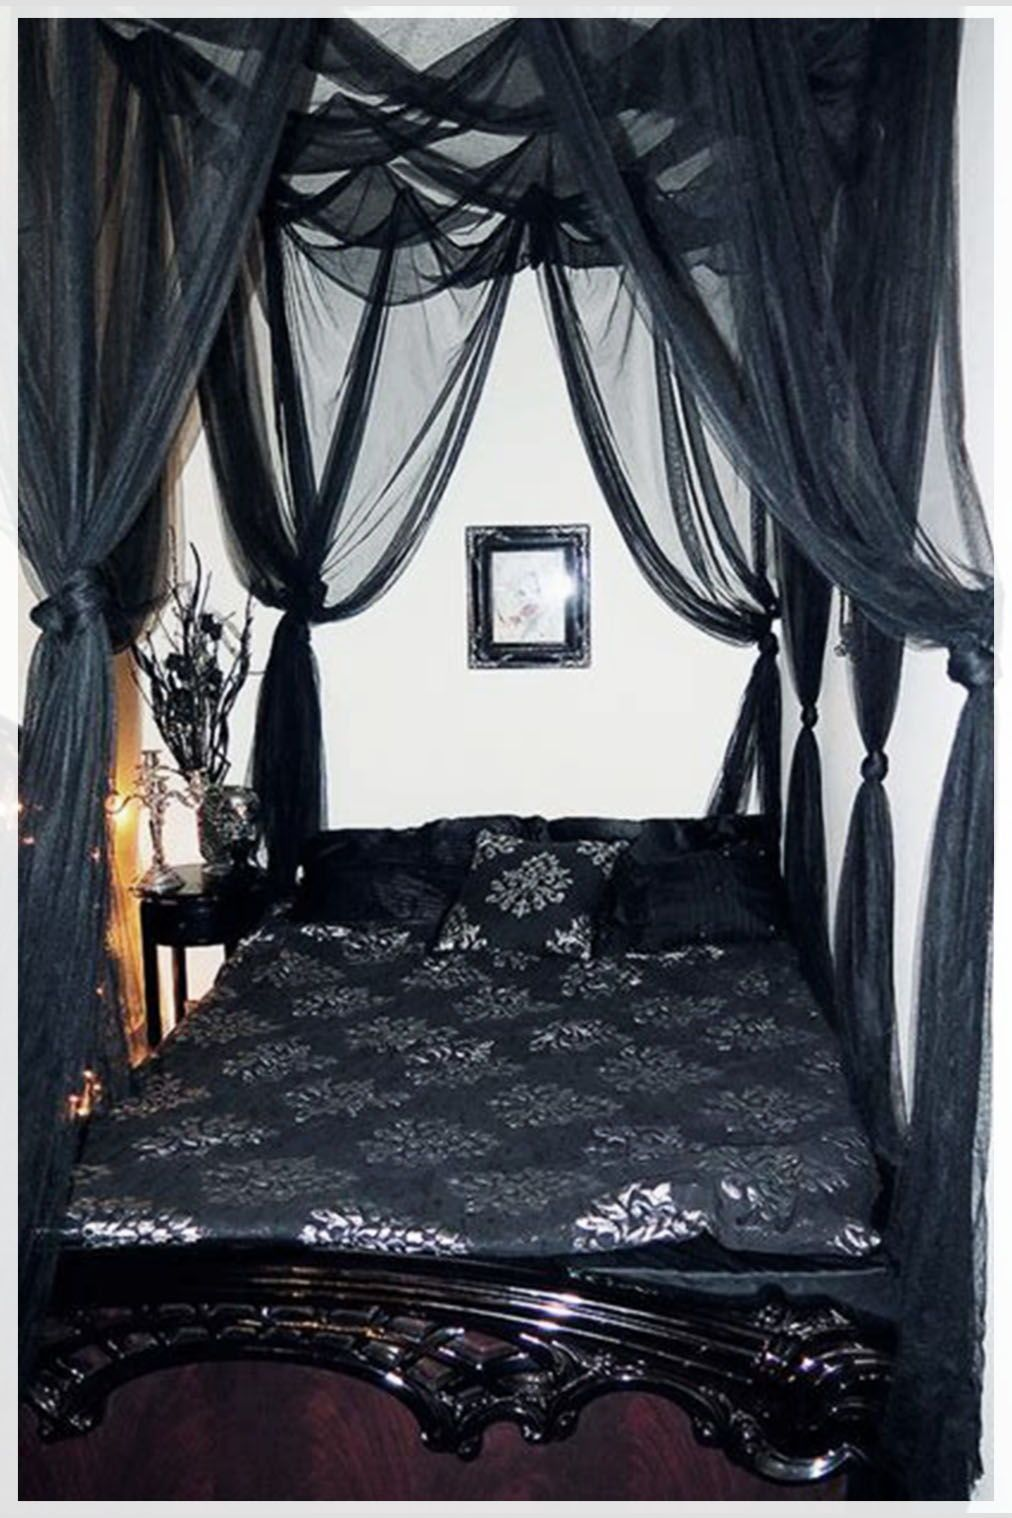 Romantic Gothic Bedroom Ideas 40 Gorgeous Design How To Decorate Black Canopy Beds Gothic Bedroom Bed Curtains